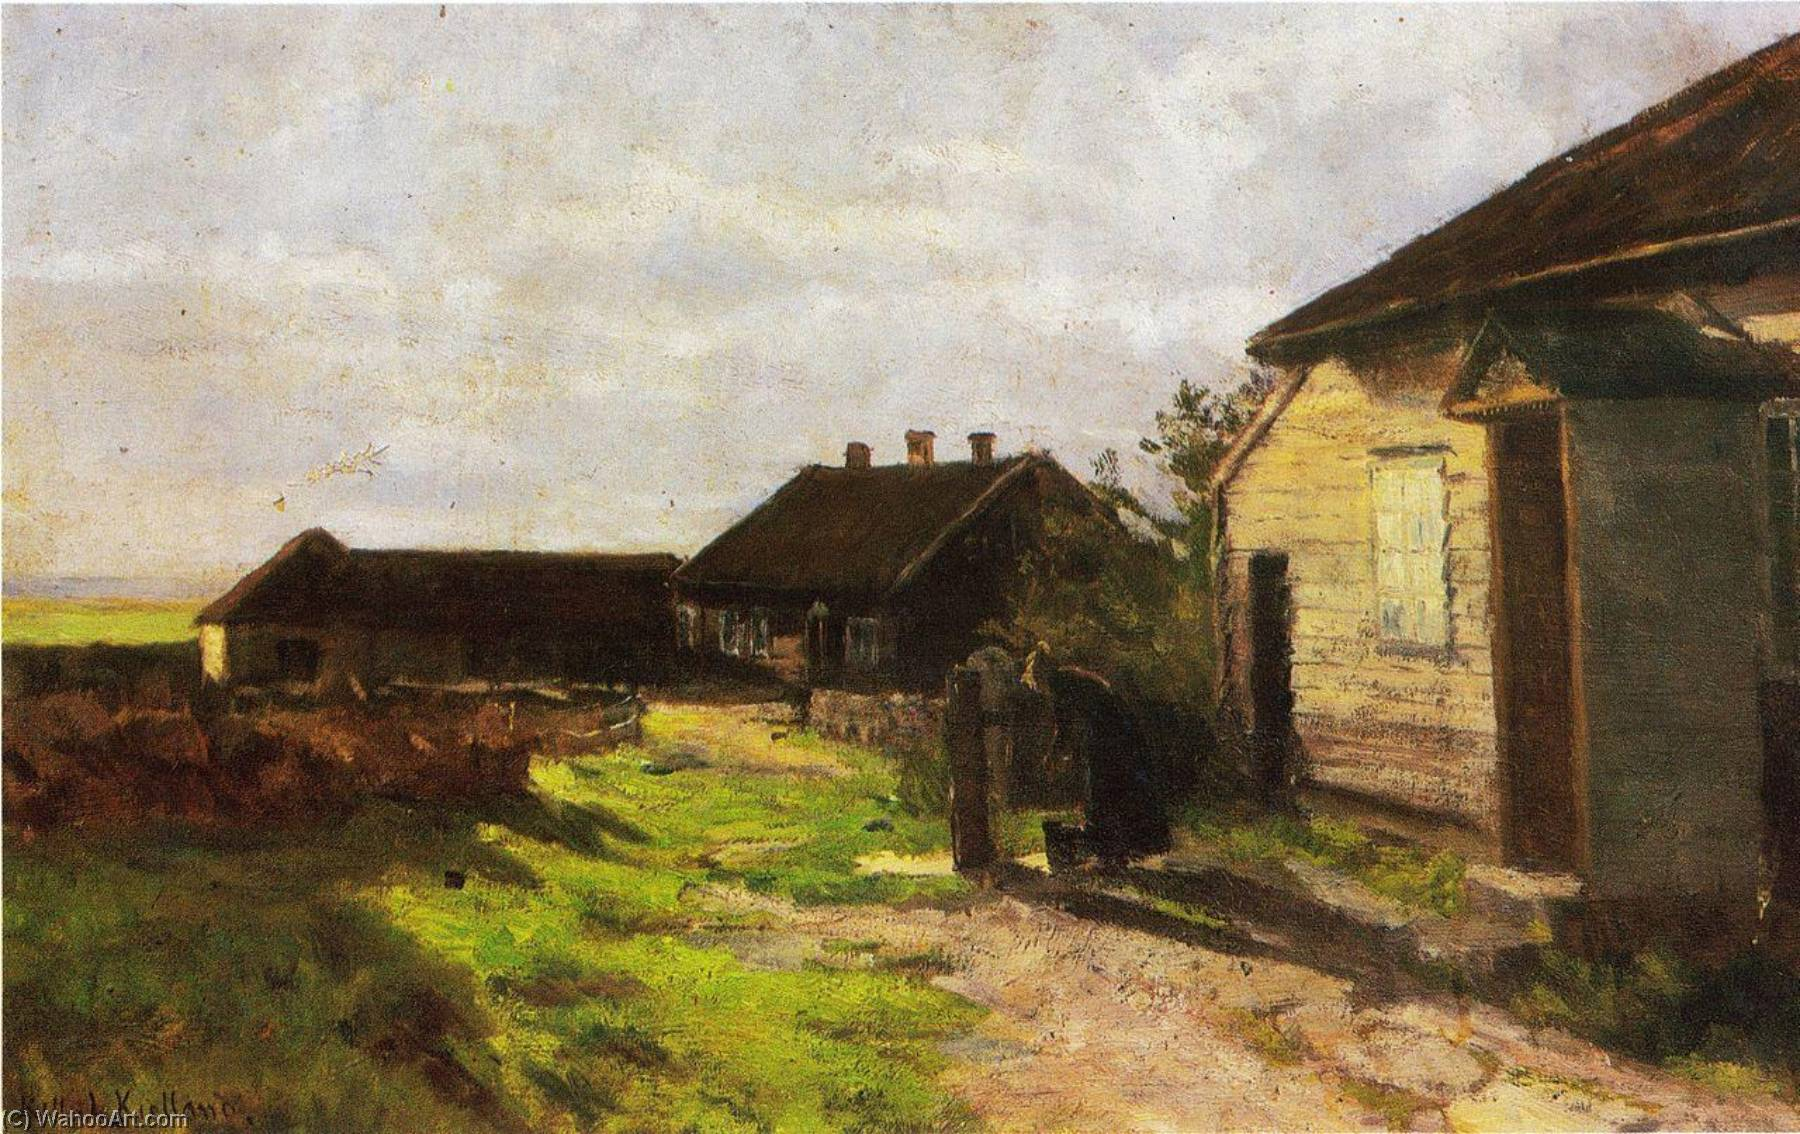 Farmstead at Kvalbein, 1904 by Kitty Kielland